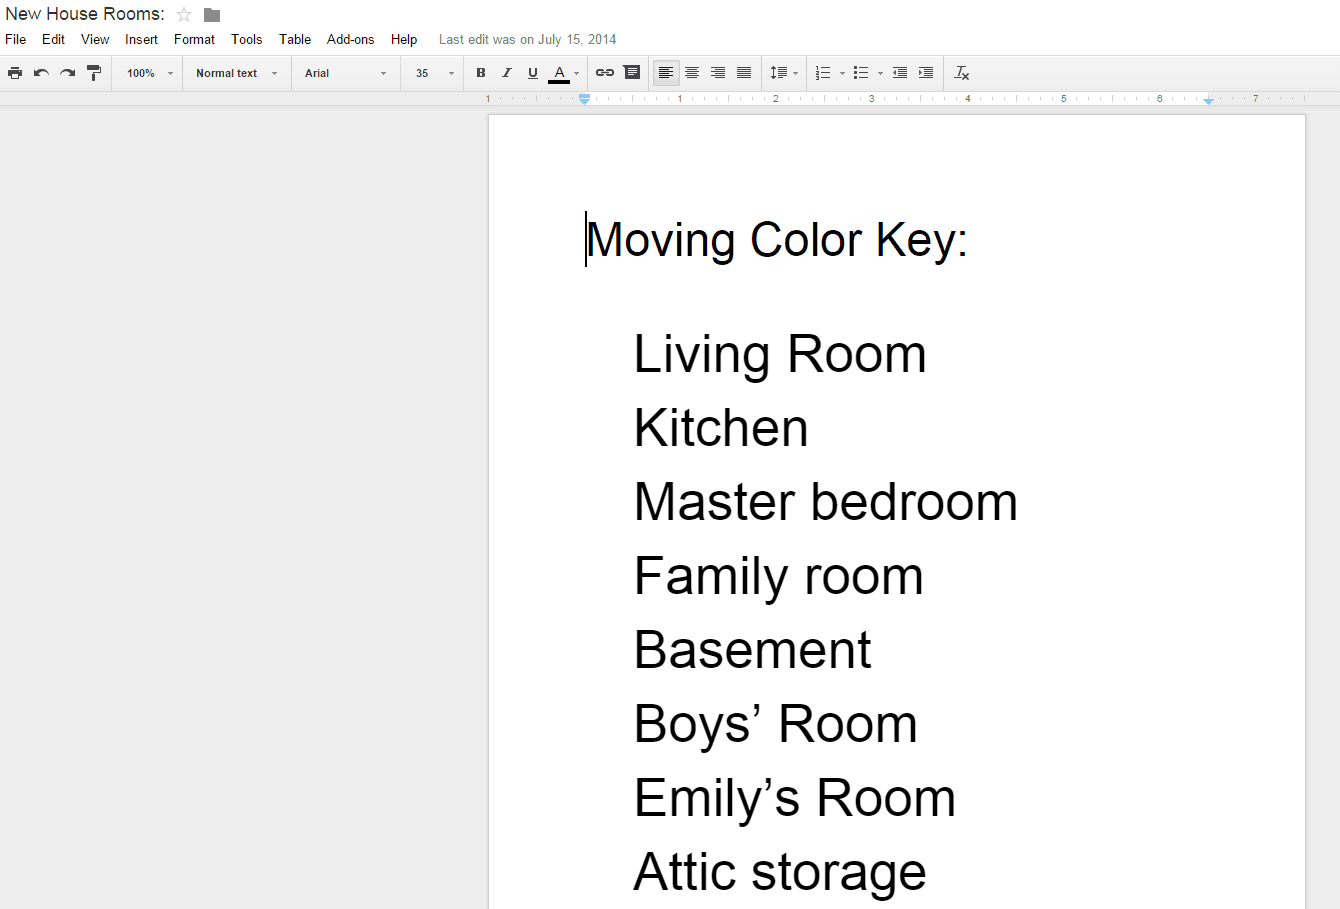 New House Rooms Google Docs